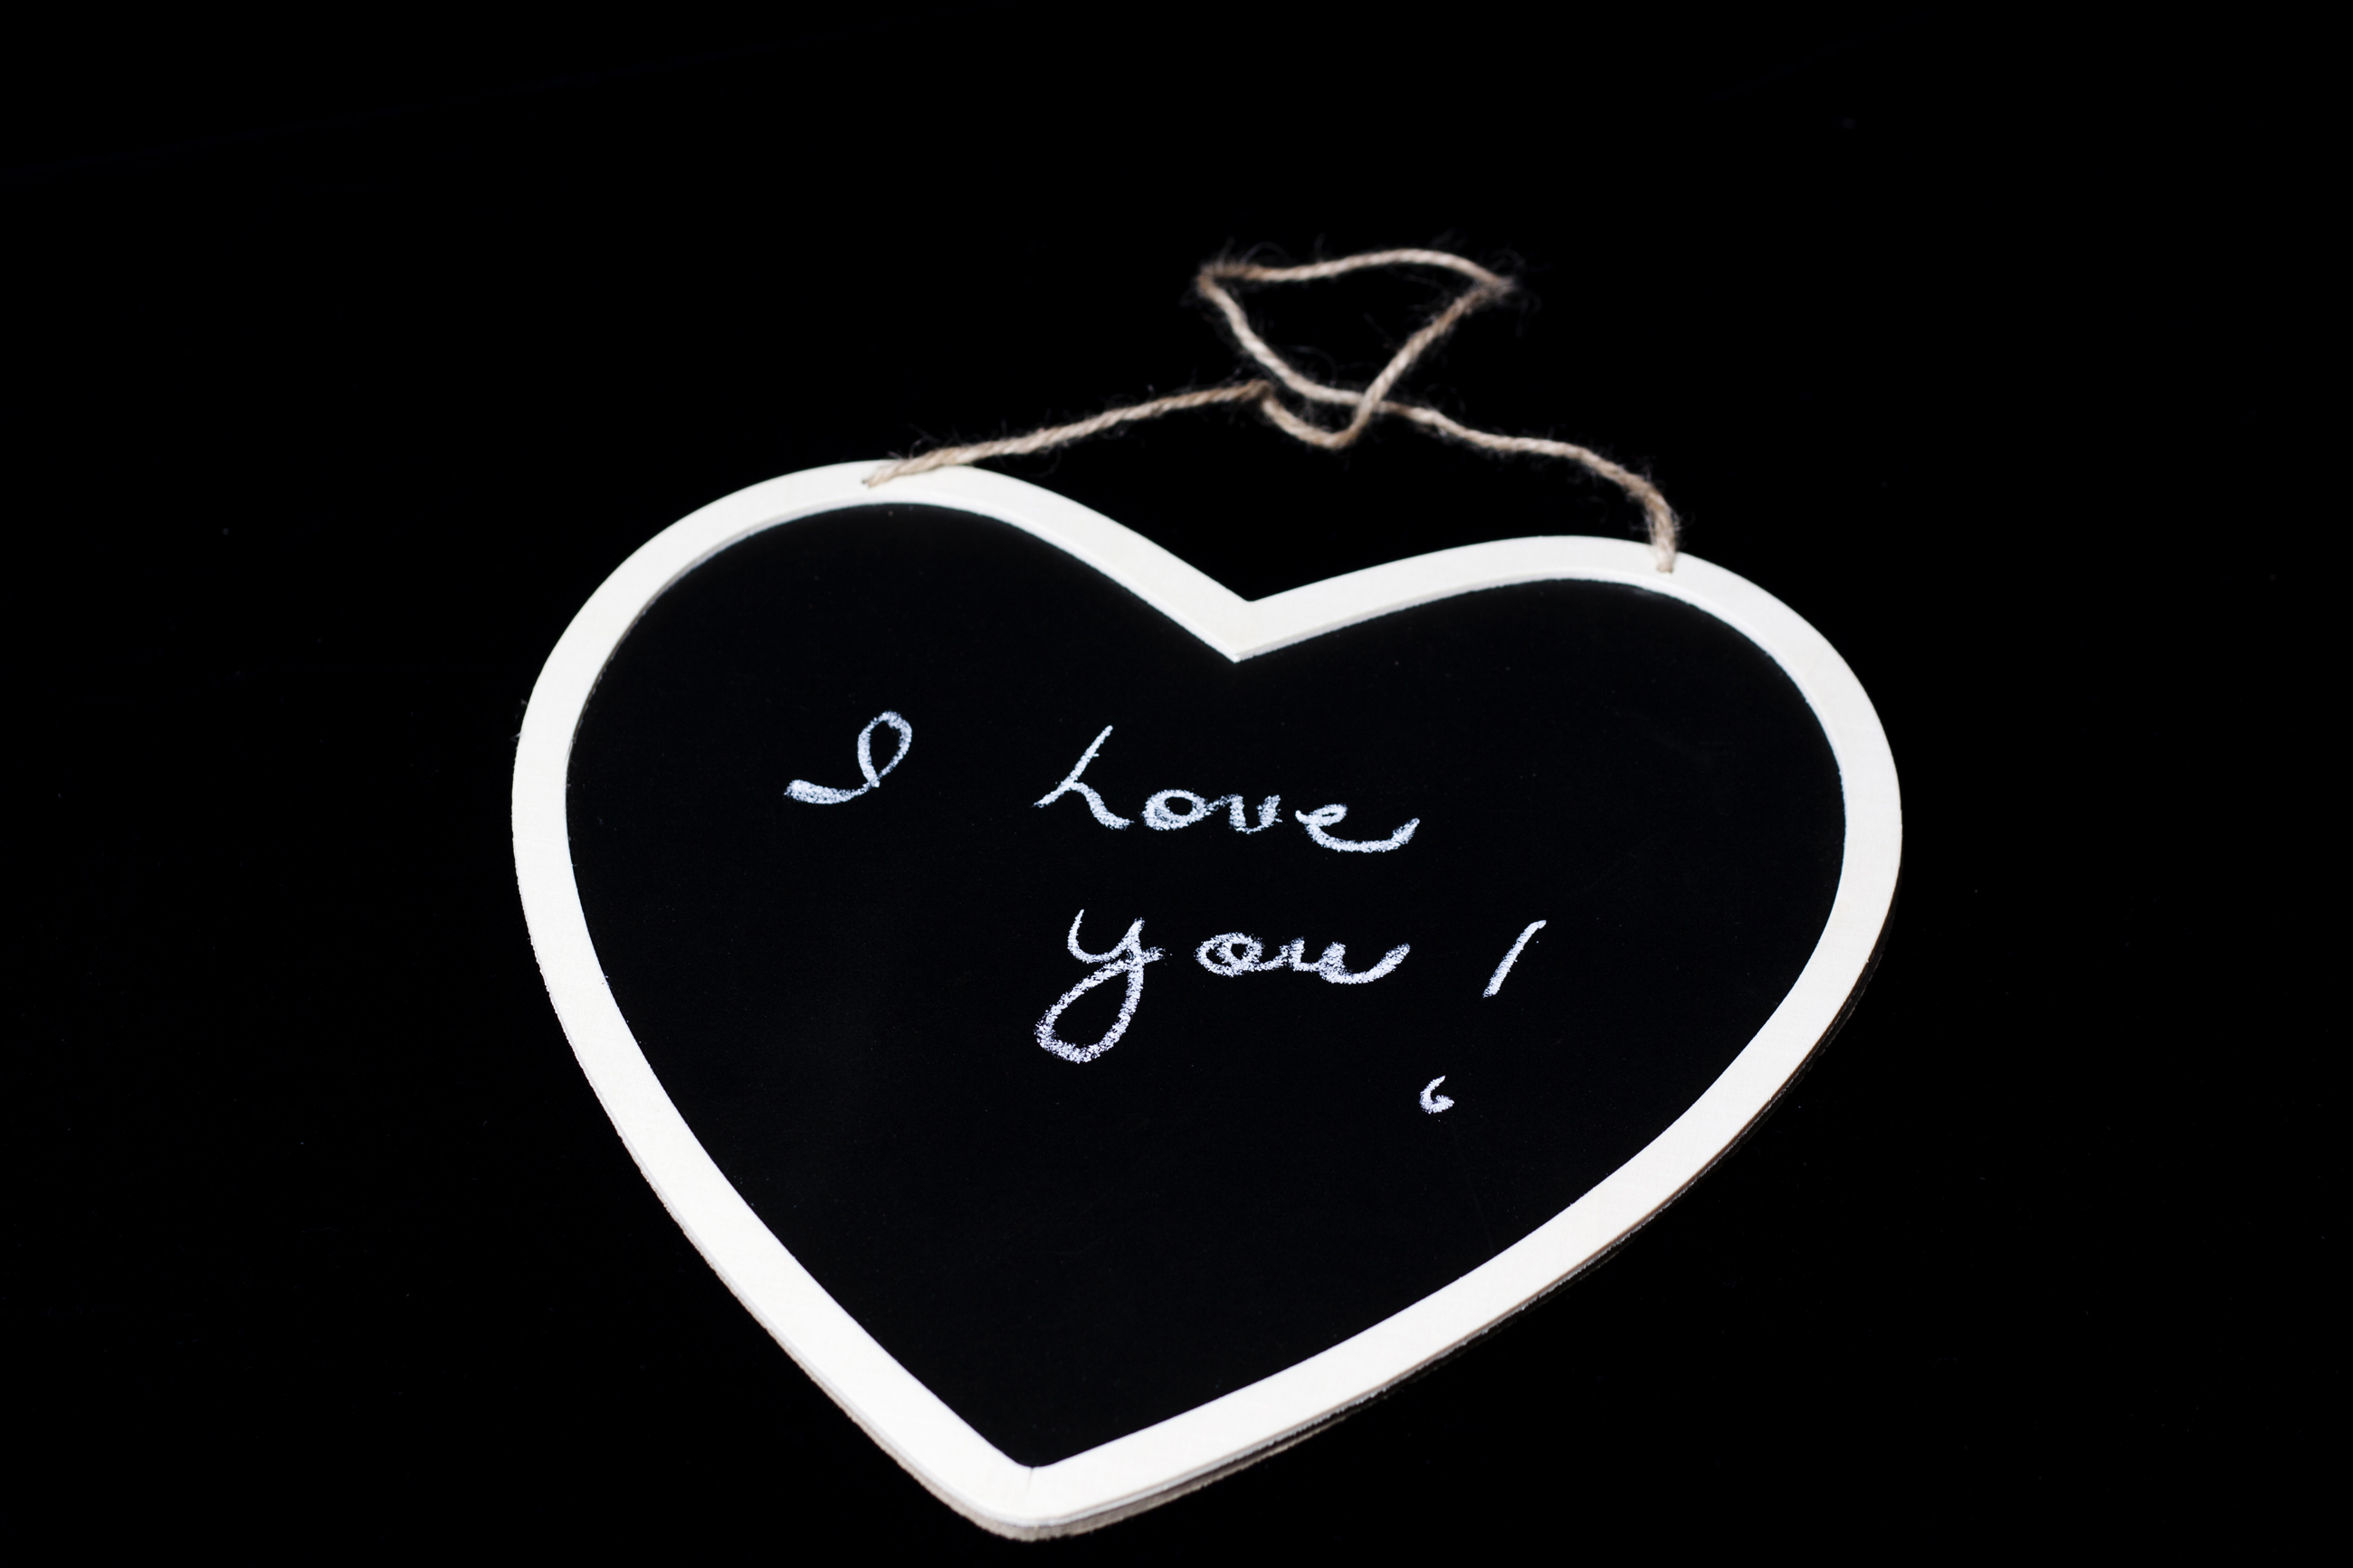 I love you - text on chalkboard photo